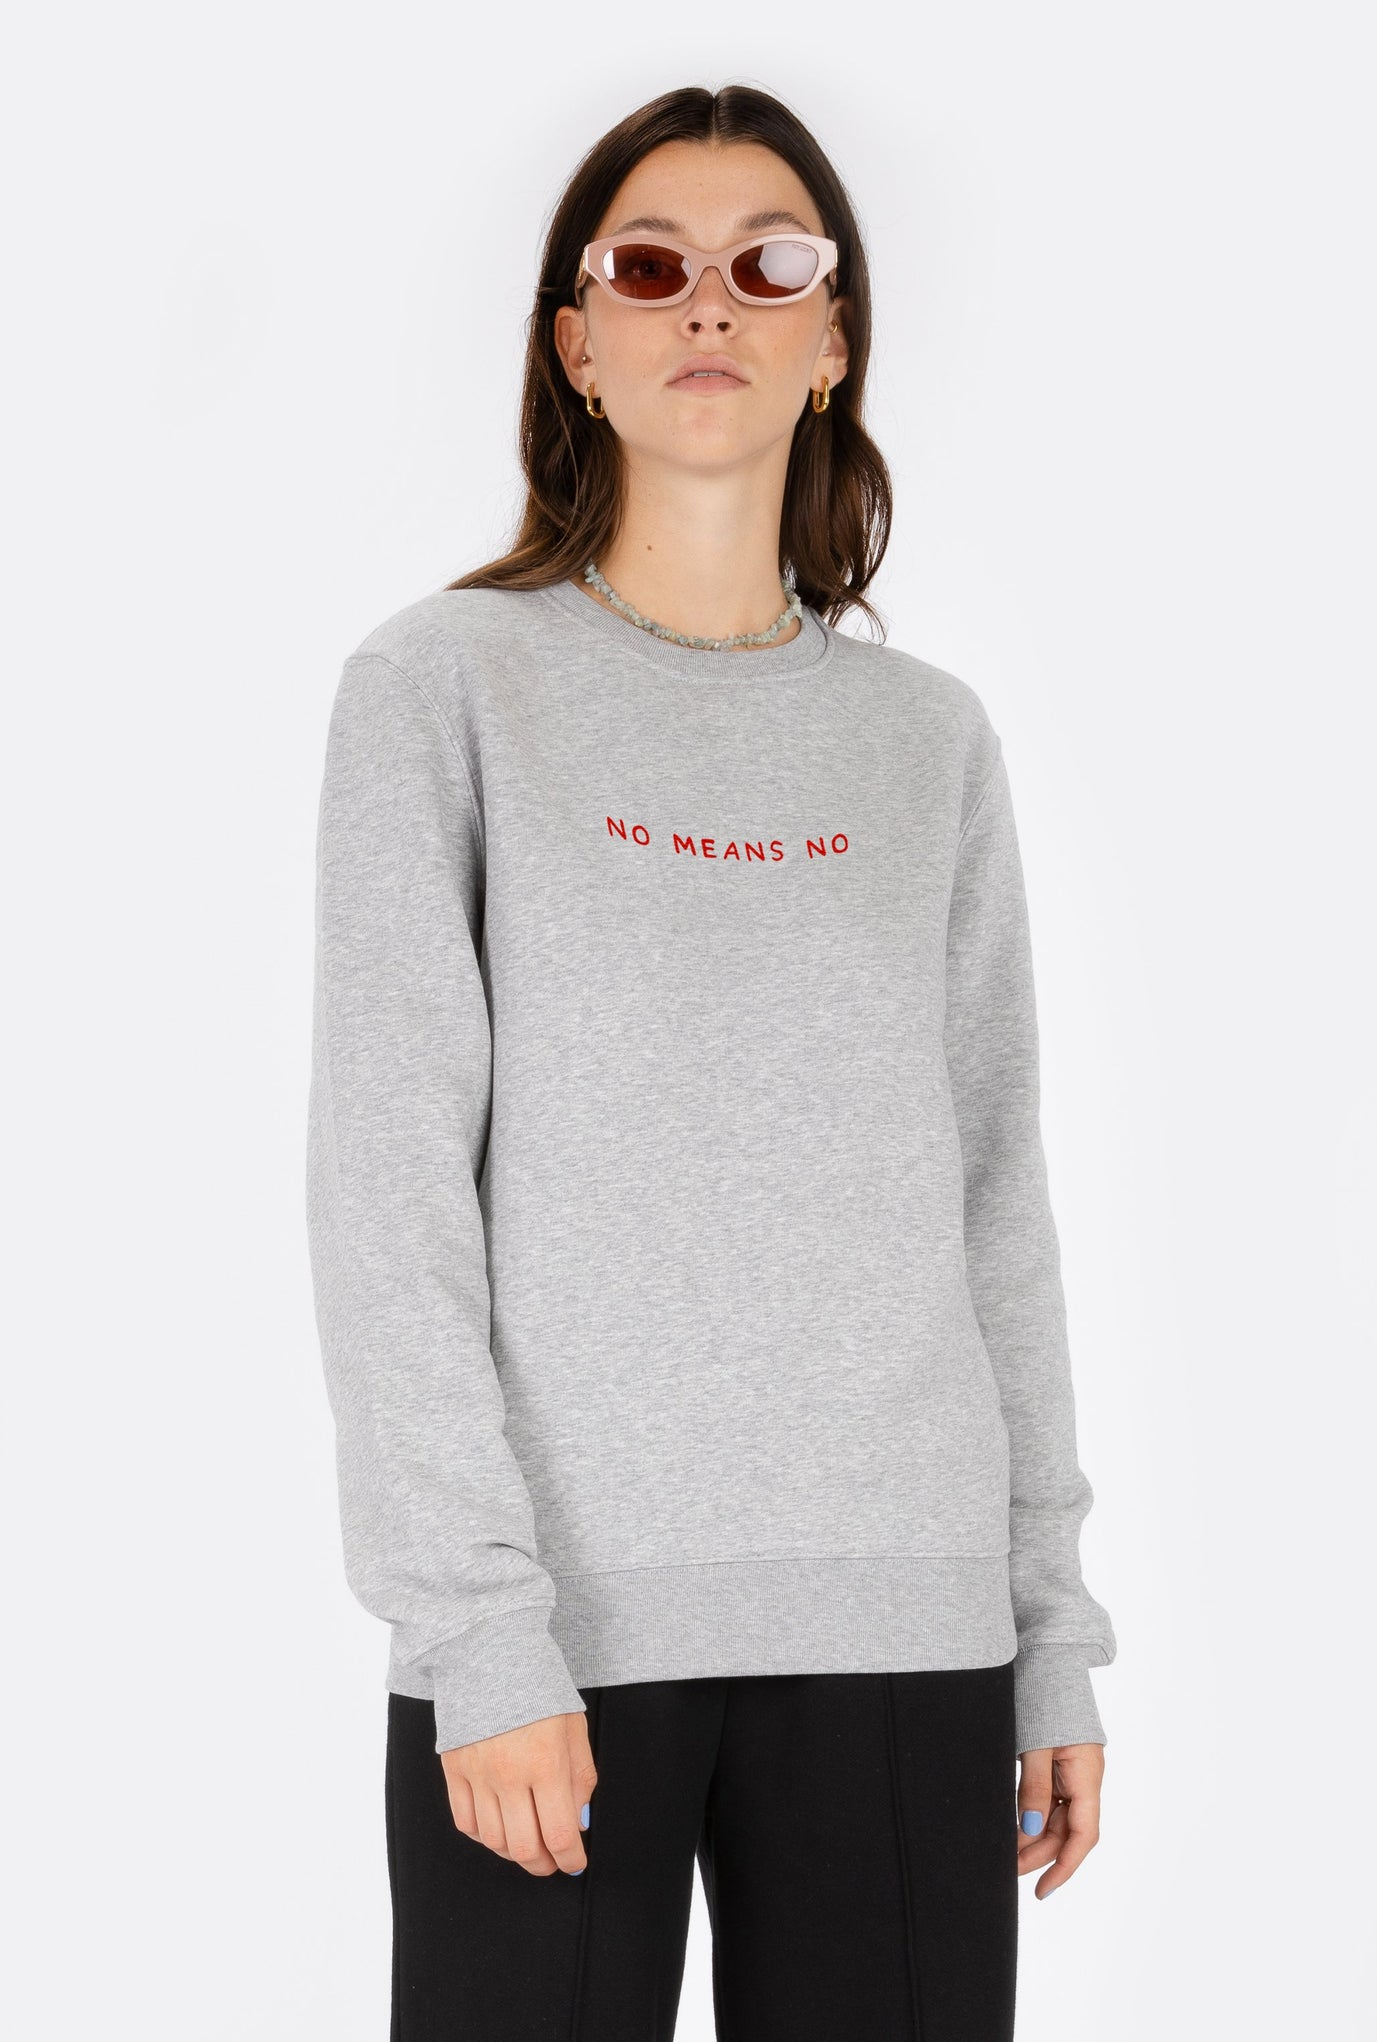 Crewneck No Means No - Embroidered